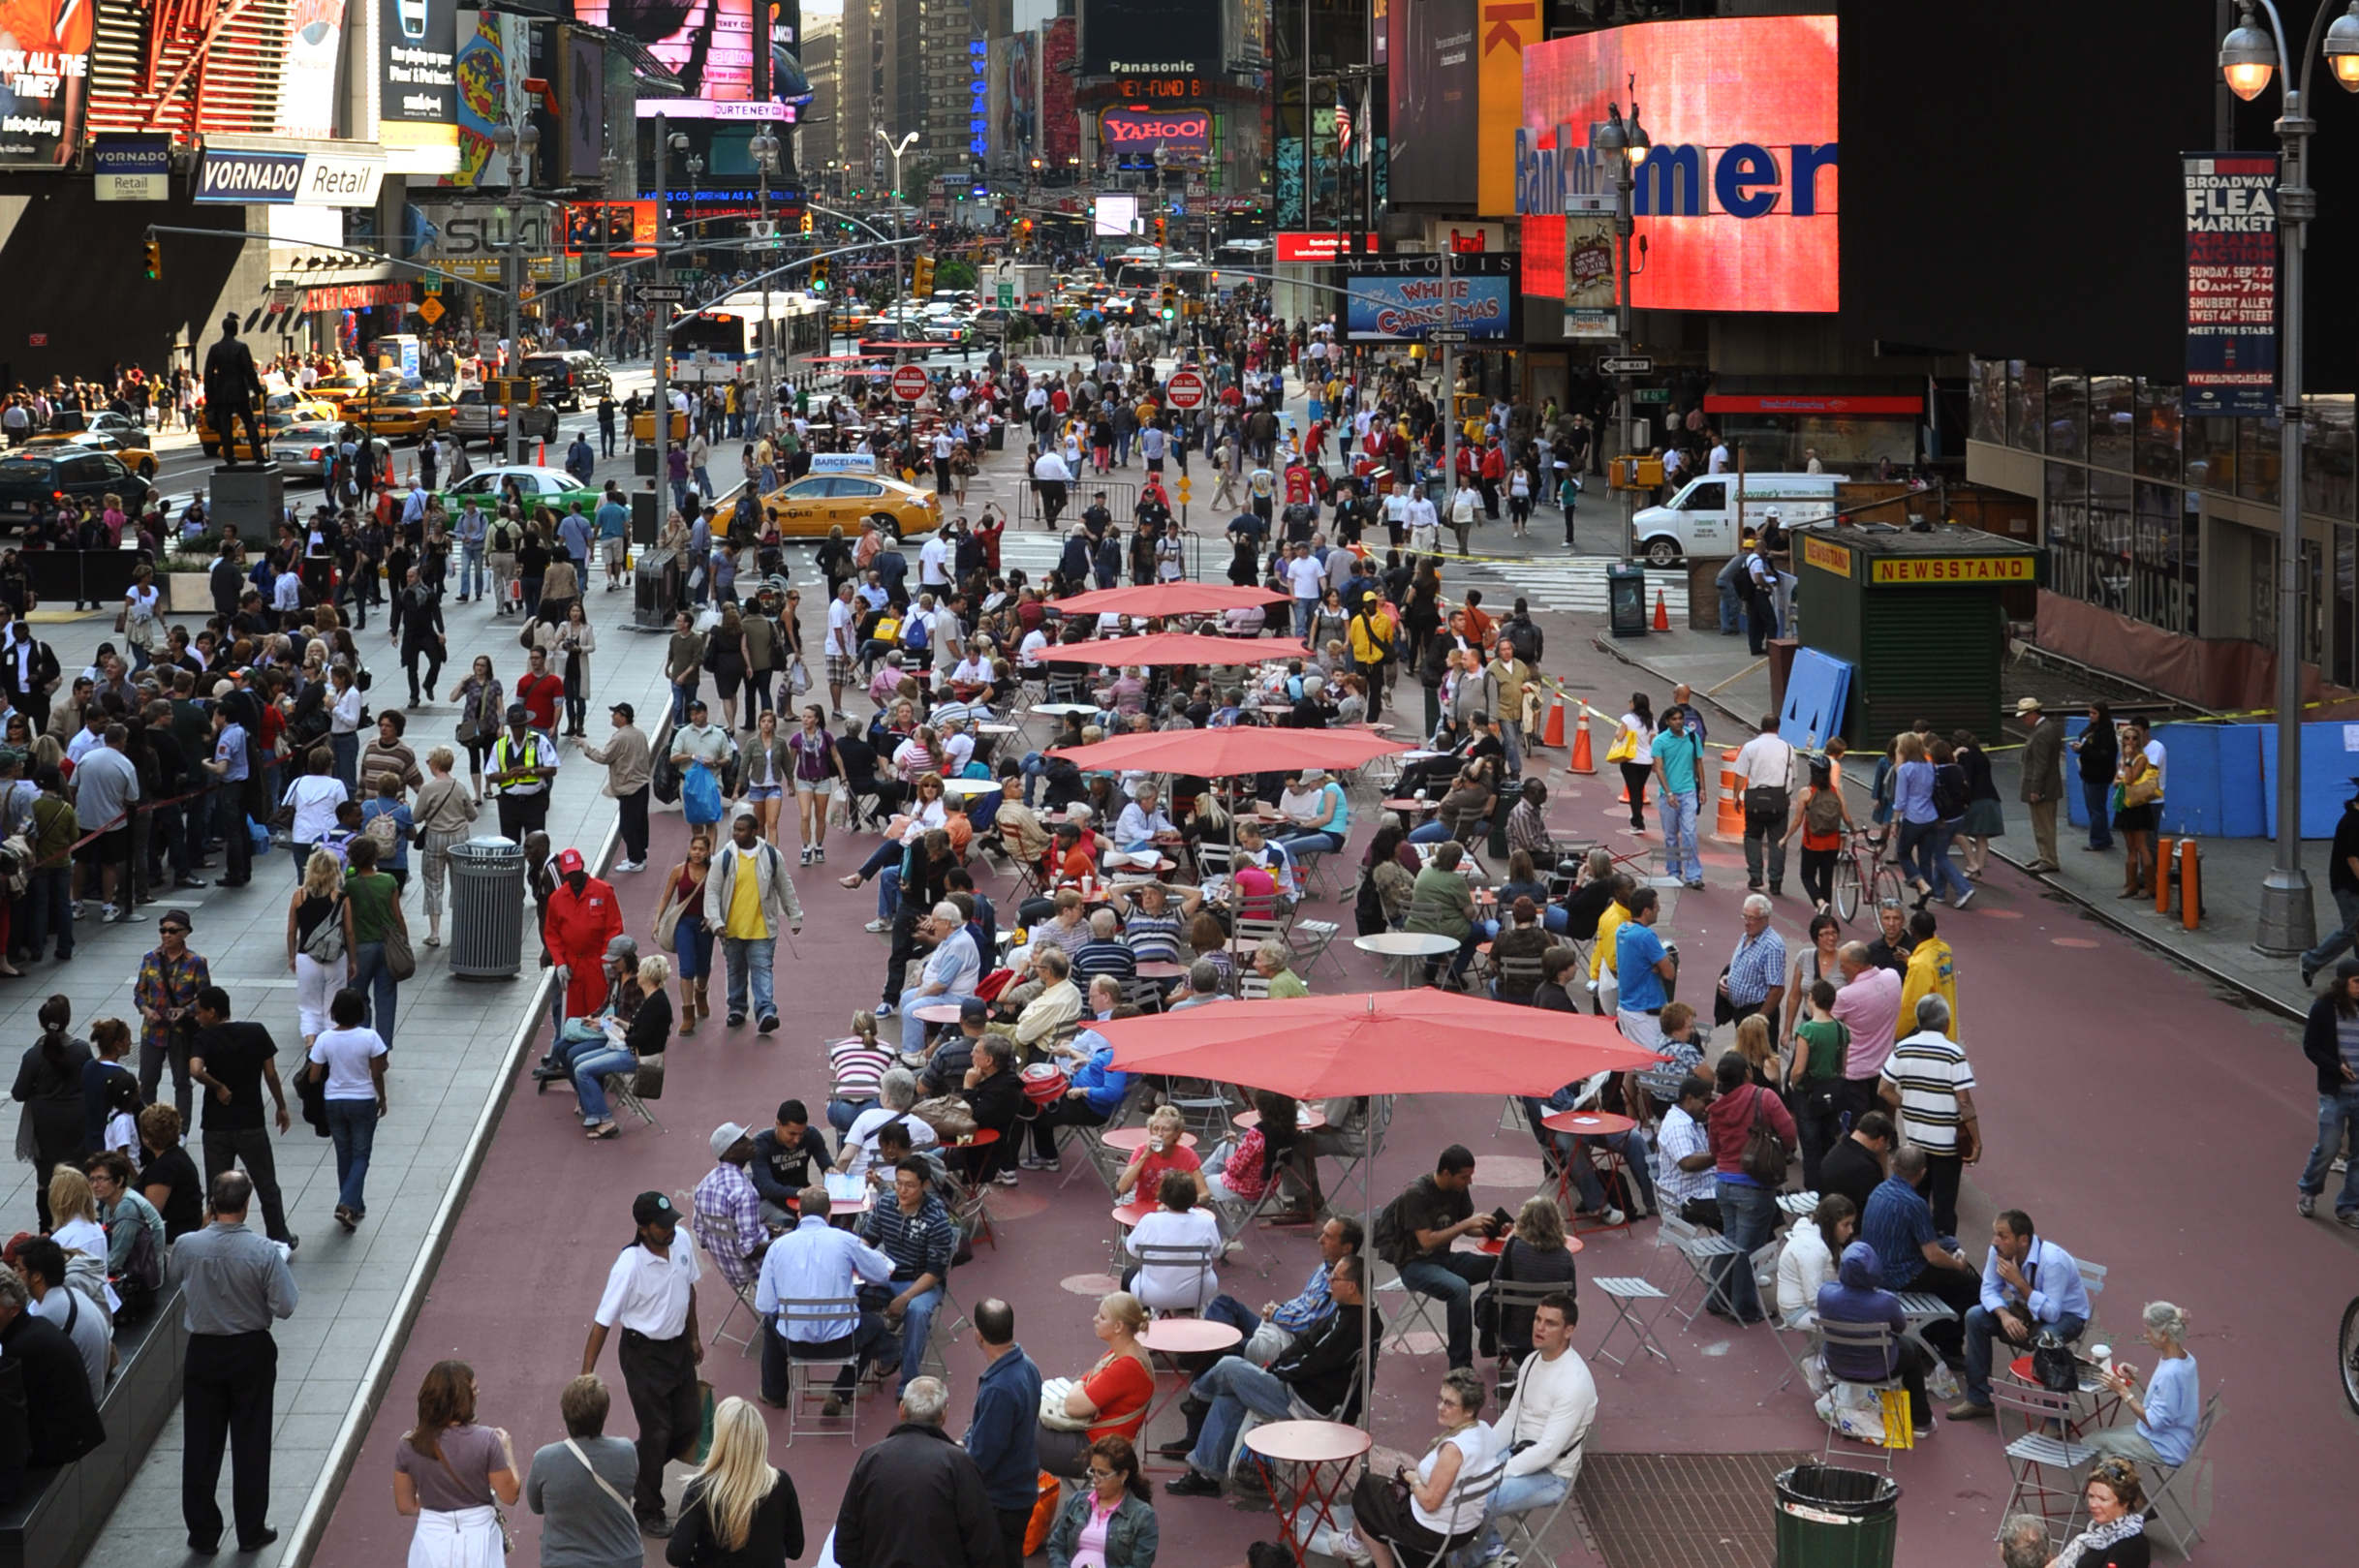 If New York can pedestrianize Times Square, Toronto can afford to be bolder in reclaiming sidewalk space. Photo by NYCDOT.